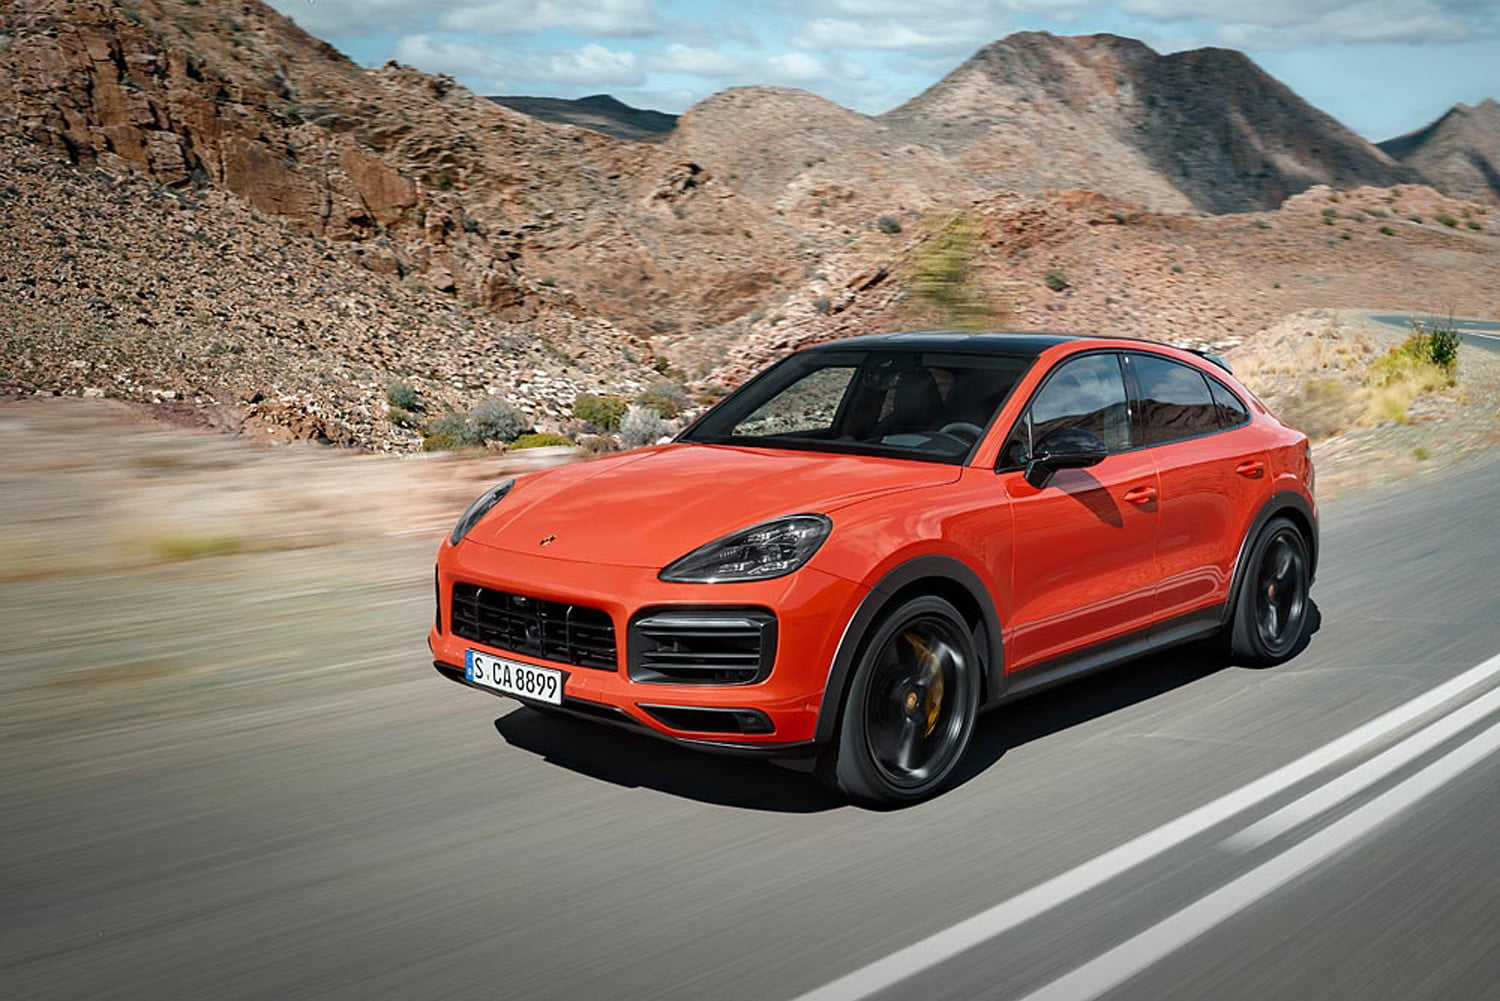 2020 Porsche Cayenne: Coupe Version, Design, Specs >> The 2020 Porsche Cayenne Coupe Is All About Style Digital Trends